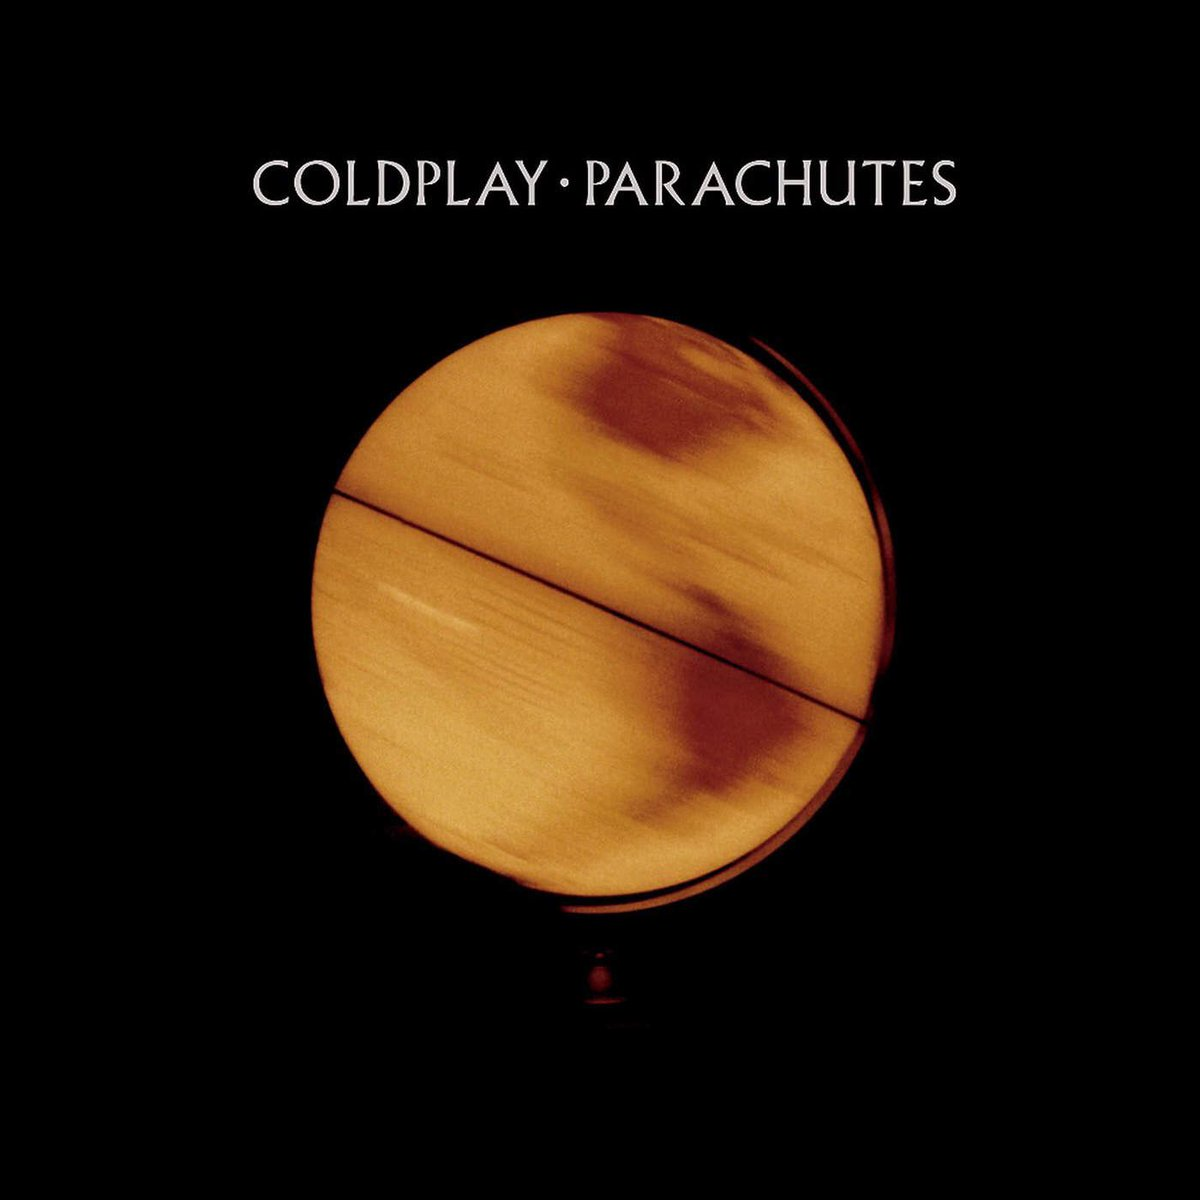 #NowPlaying Yellow - Parachutes By Coldplay <br>http://pic.twitter.com/kGSUEsJ2VS